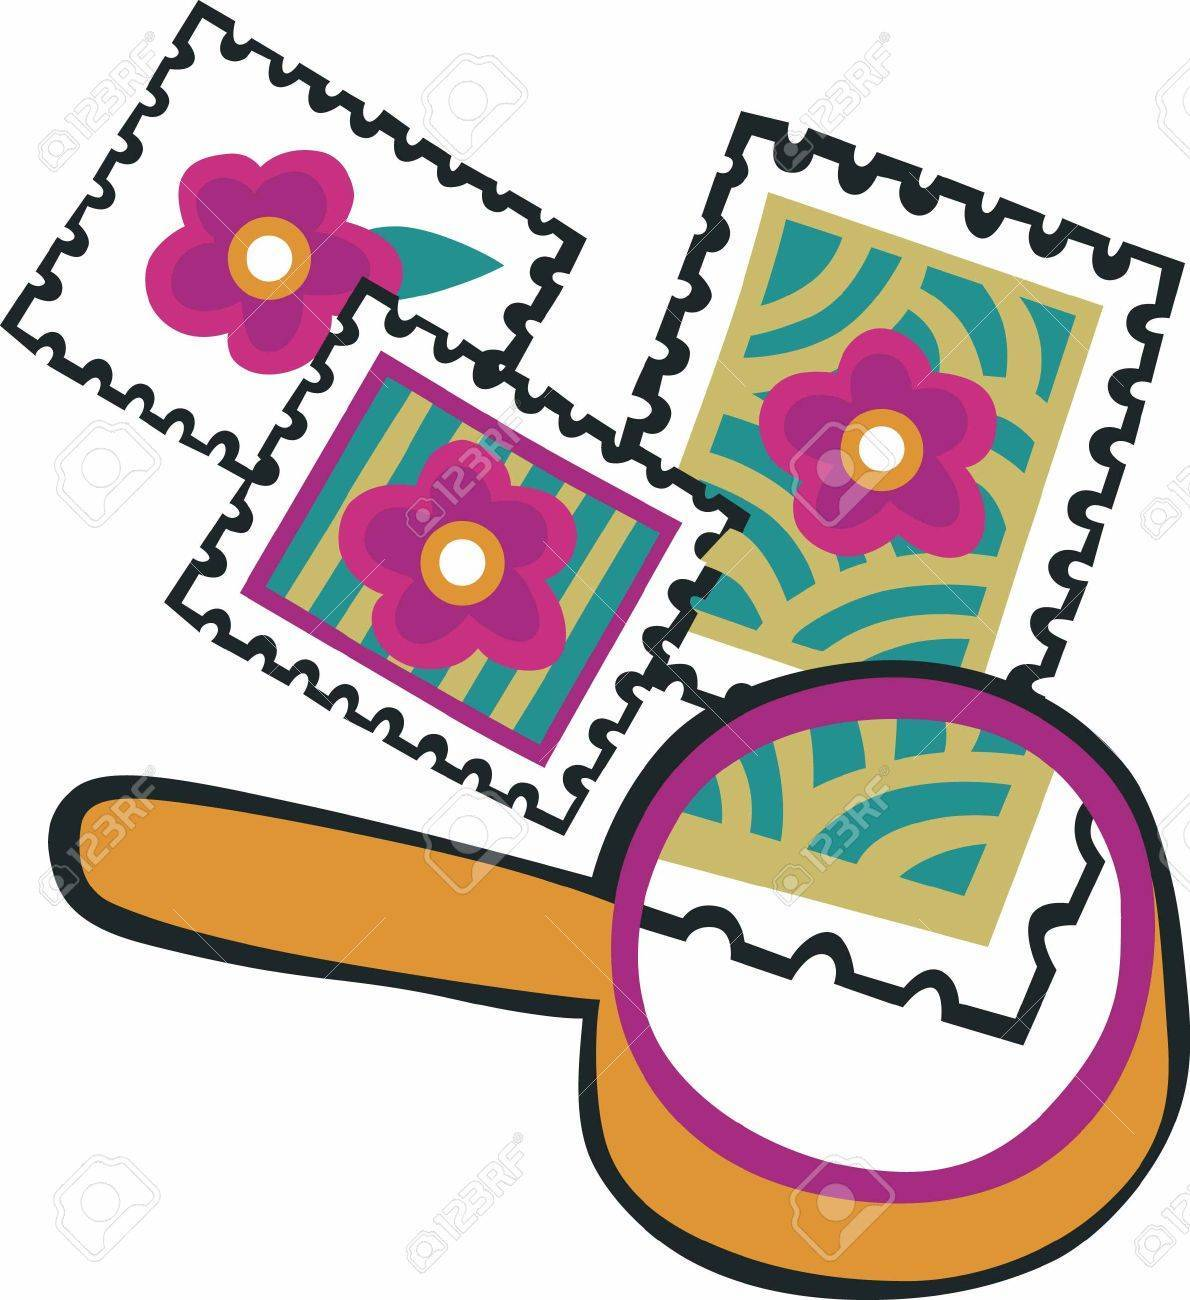 Collecting stamps clipart 2 » Clipart Portal.